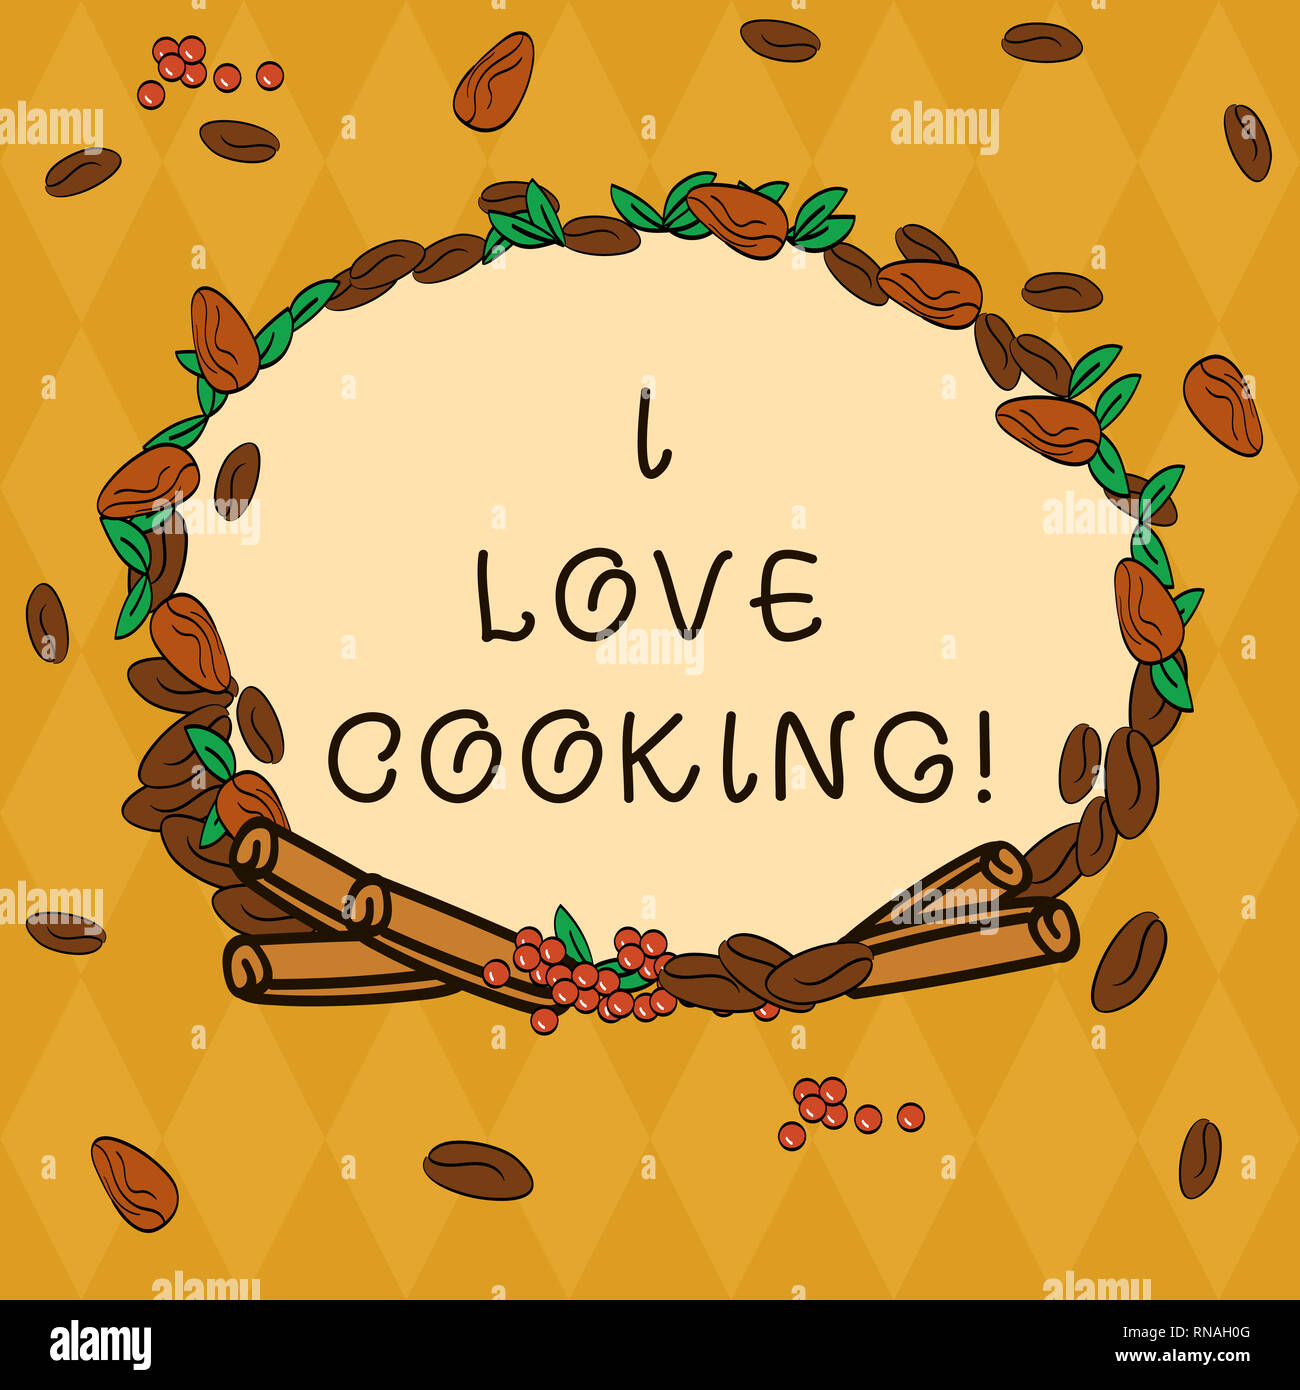 Handwriting Text I Love Cooking Concept Meaning Having Affection For Culinary Arts Prepare Foods And Desserts Wreath Made Of Different Color Seeds Le Stock Photo Alamy